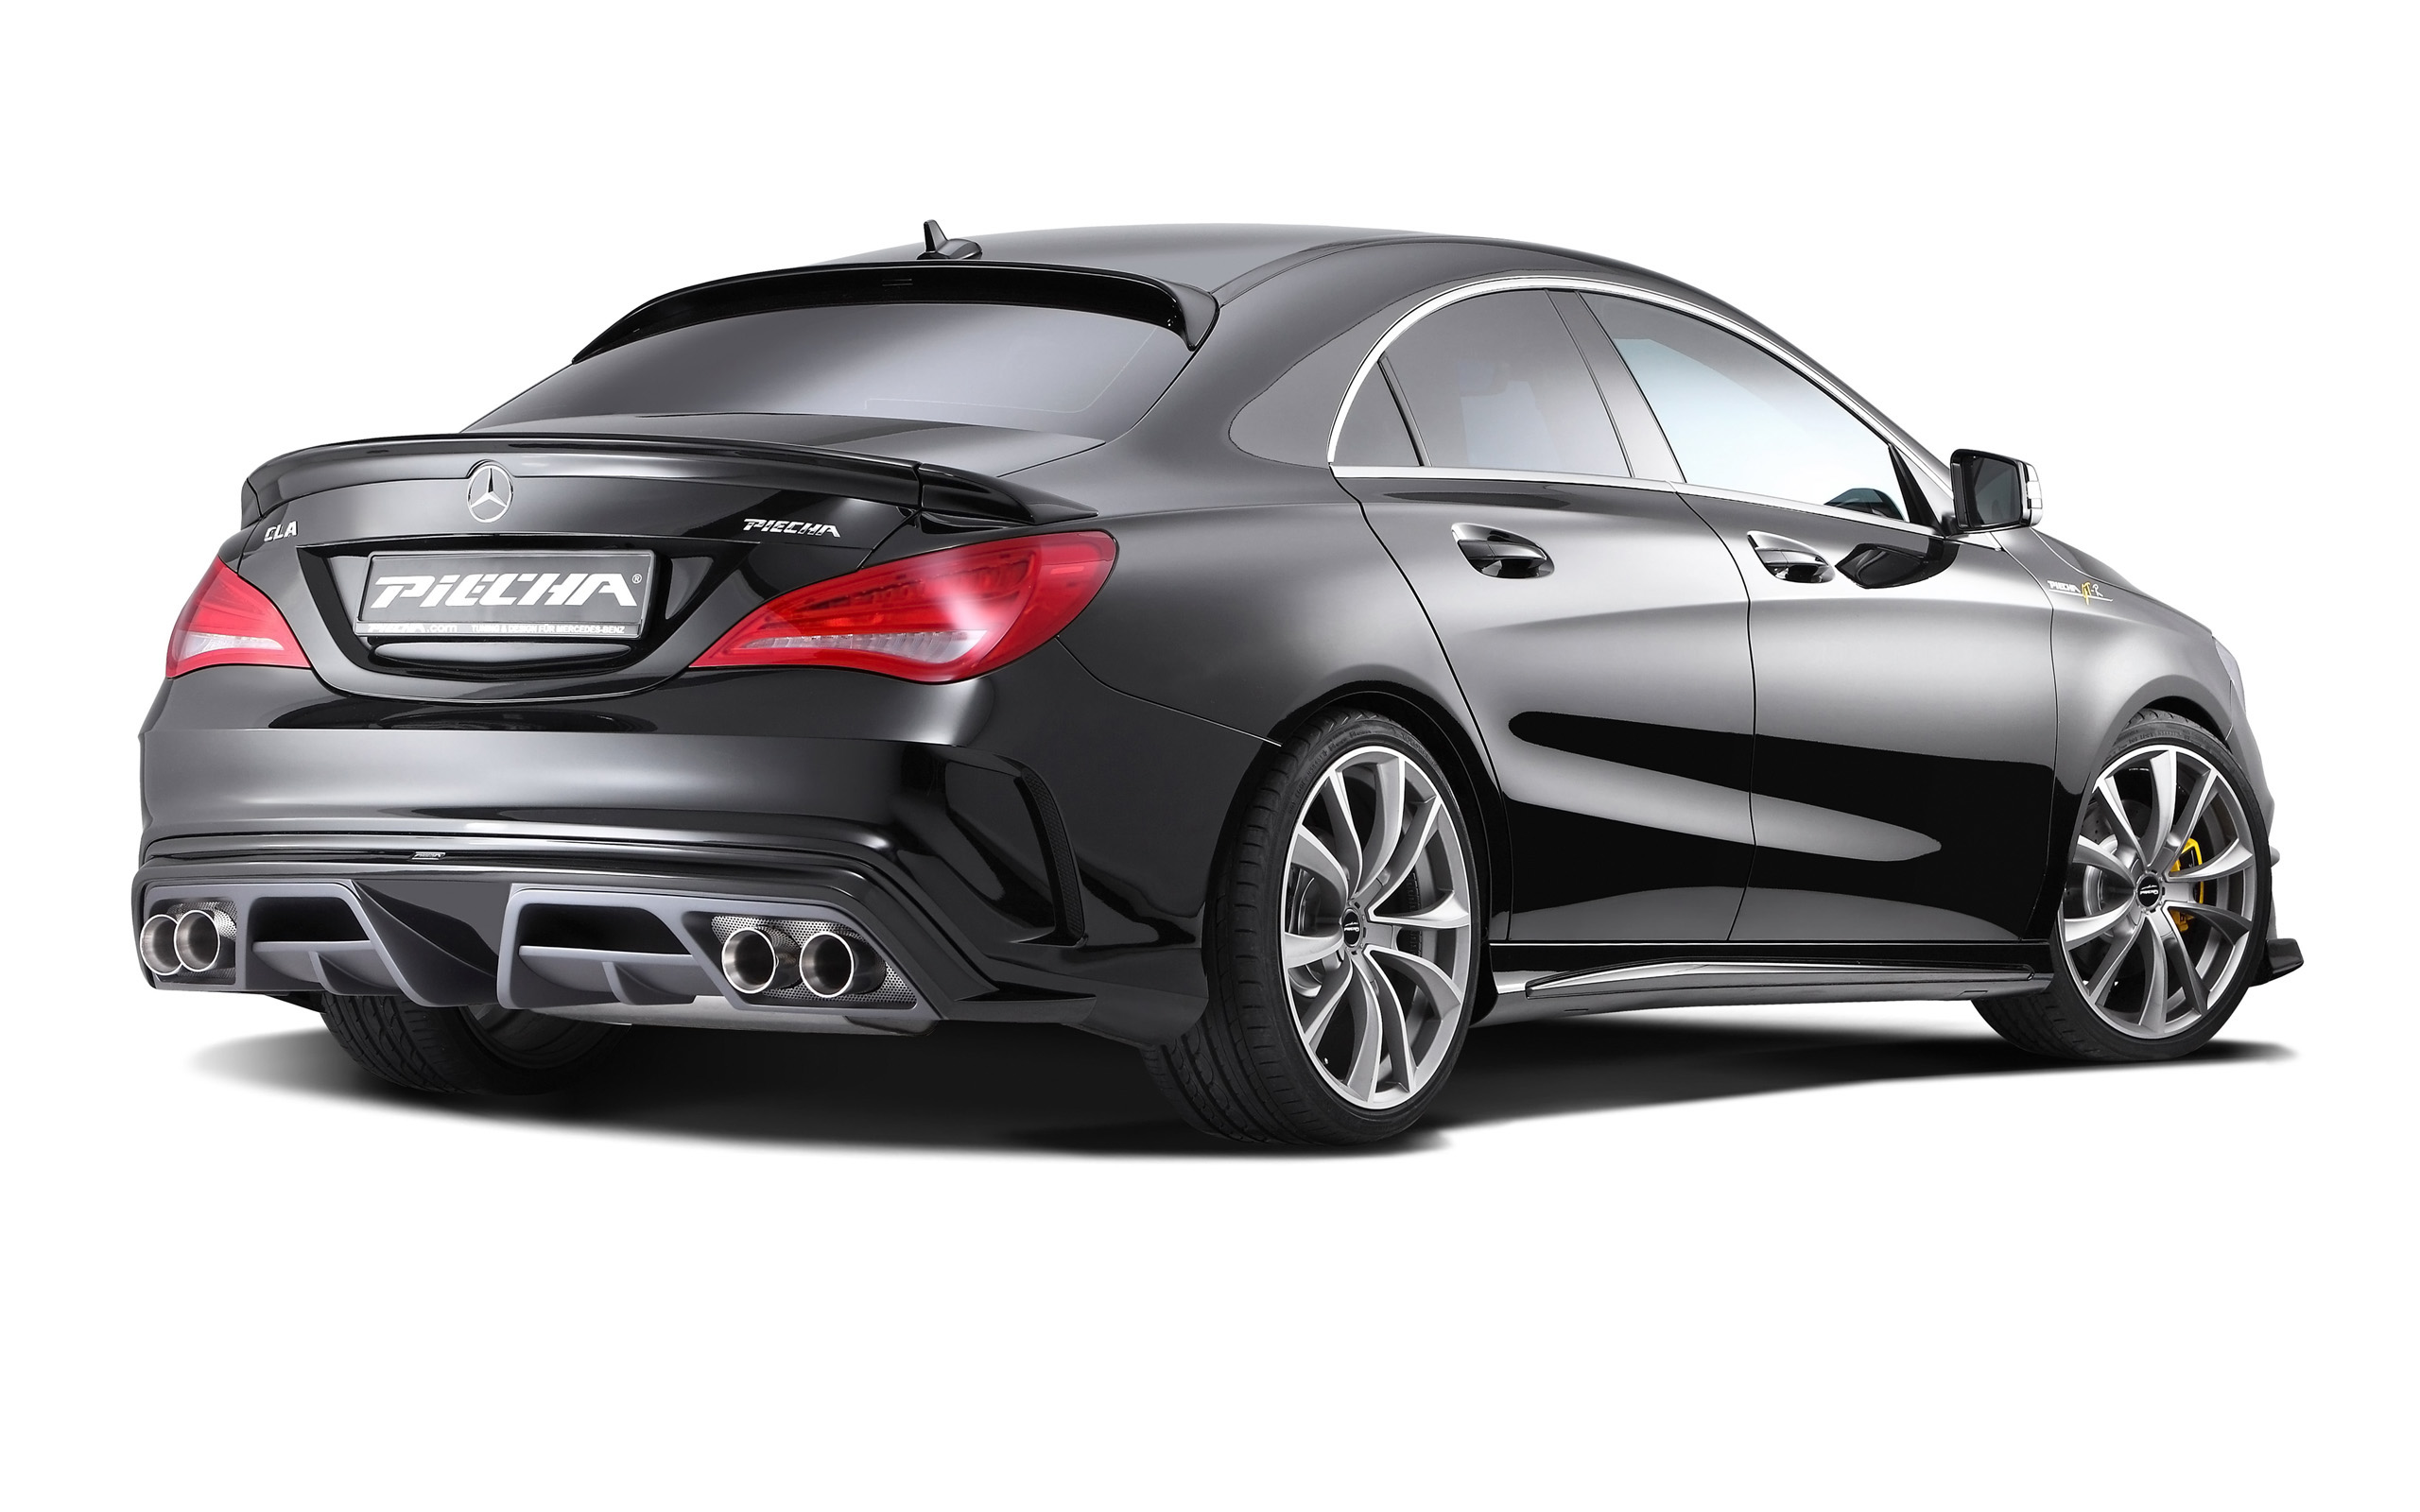 2013 piecha design mercedes benz cla tuning g wallpaper. Black Bedroom Furniture Sets. Home Design Ideas